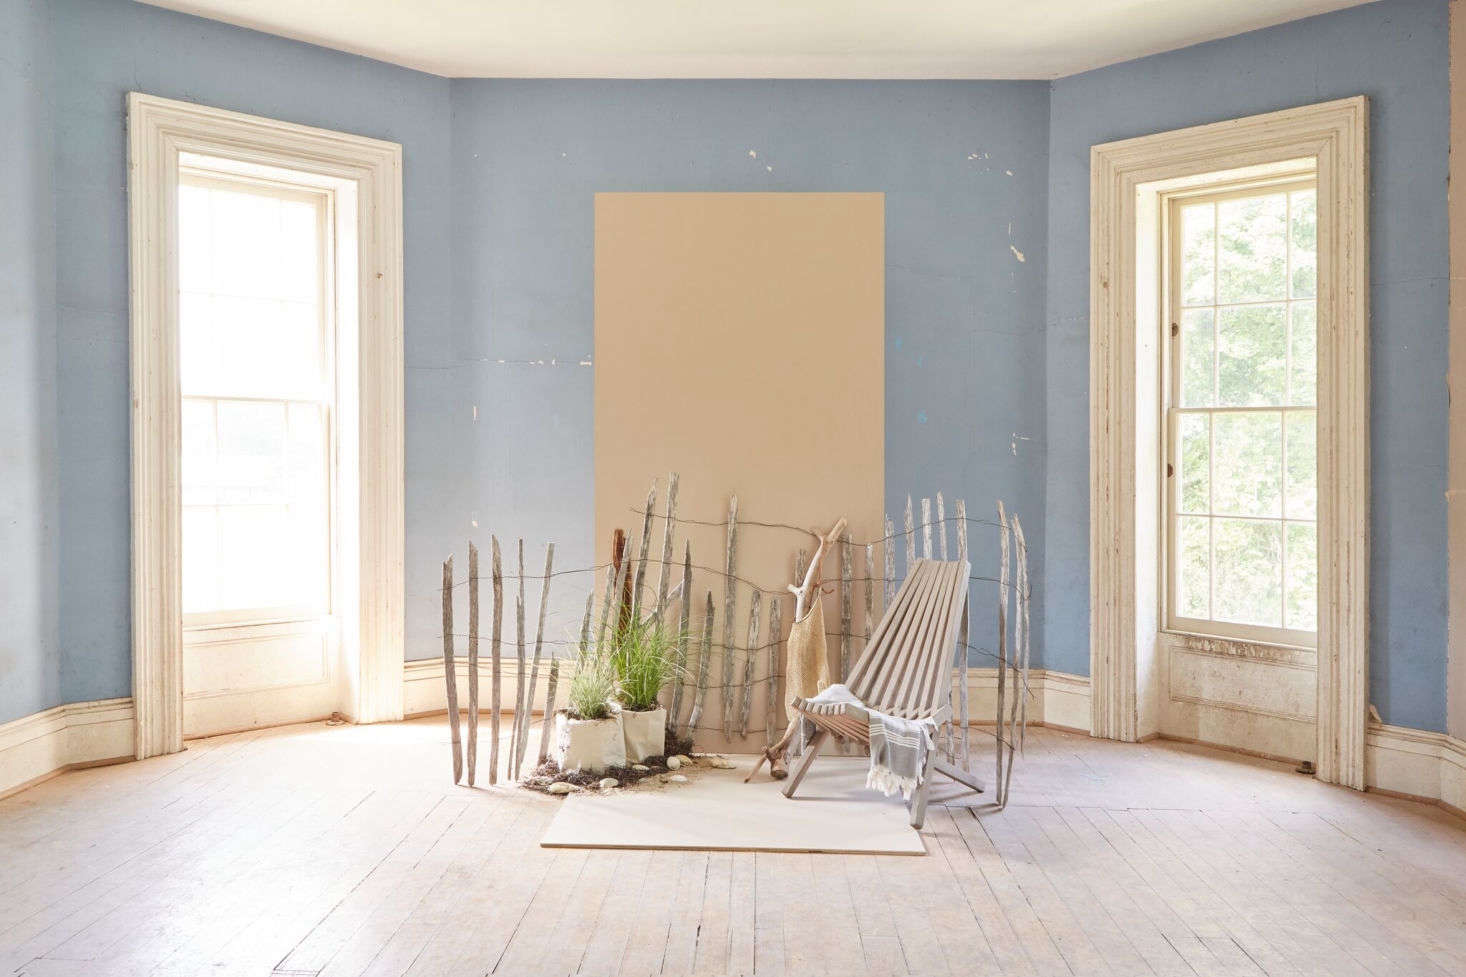 9 New Paint Colors From Farrow Ball A Color Field Trip With Zio And Sons Remodelista